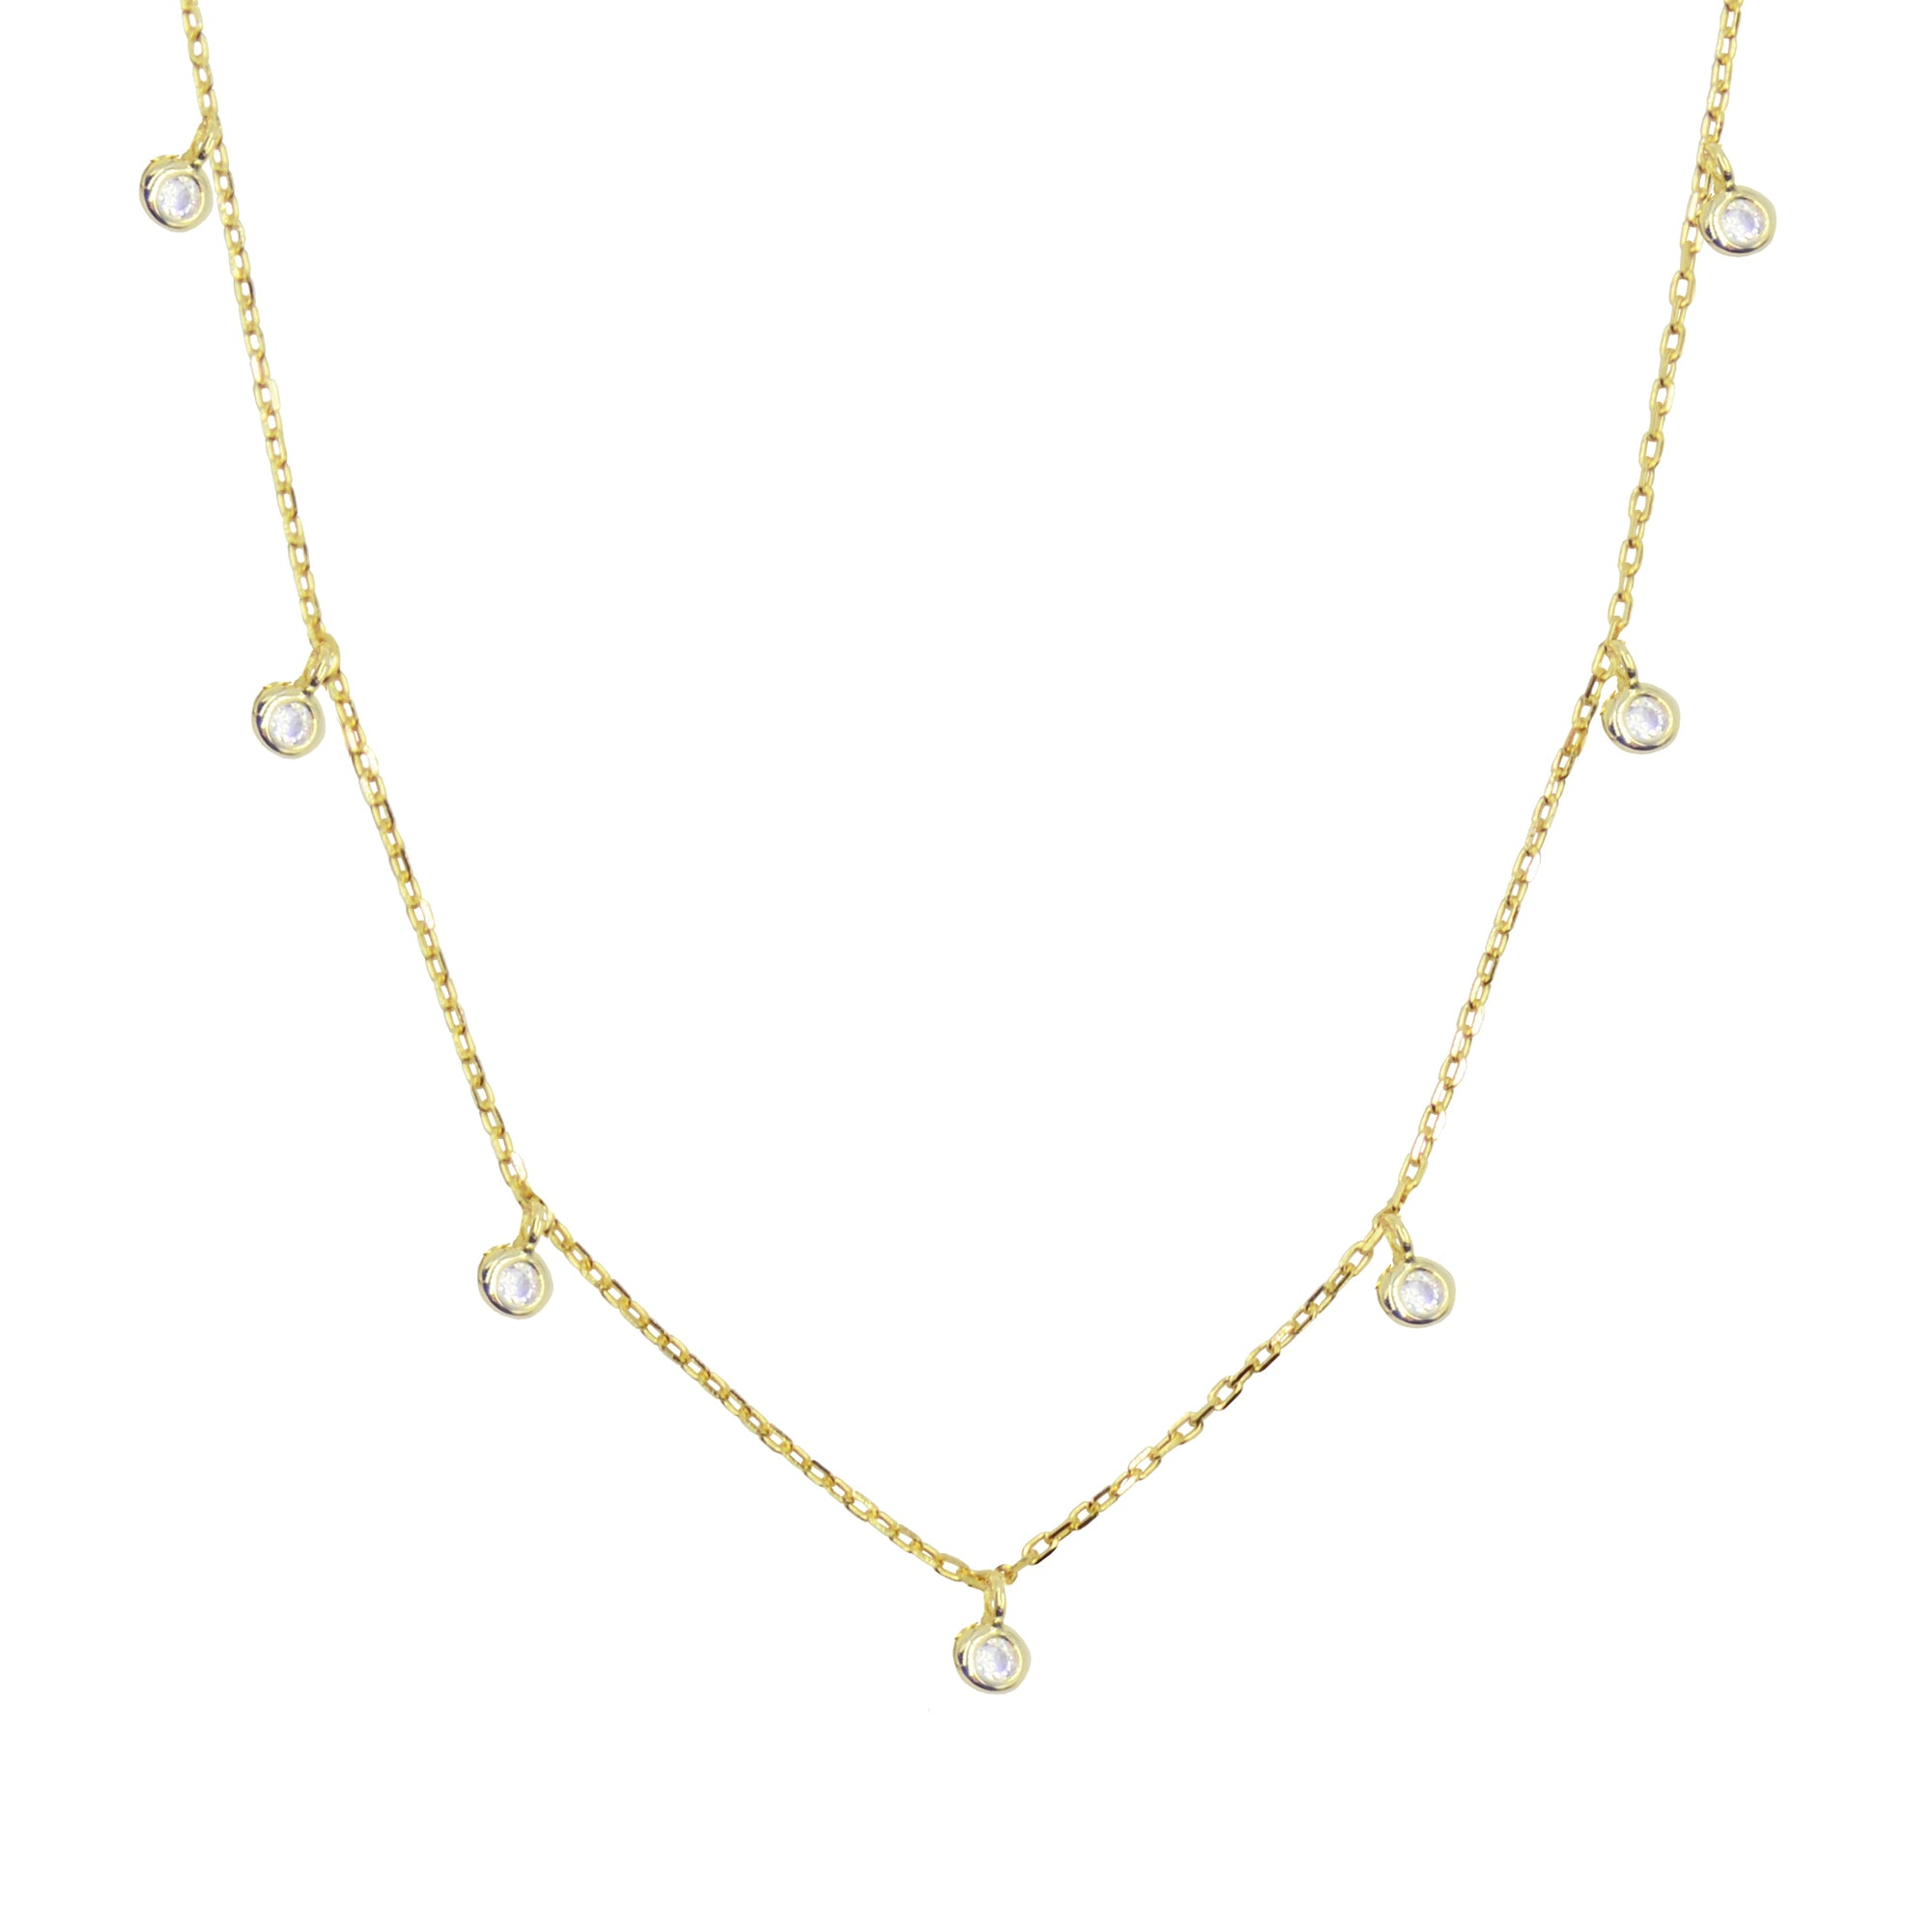 Dew drops crystal choker layering necklace in yellow gold